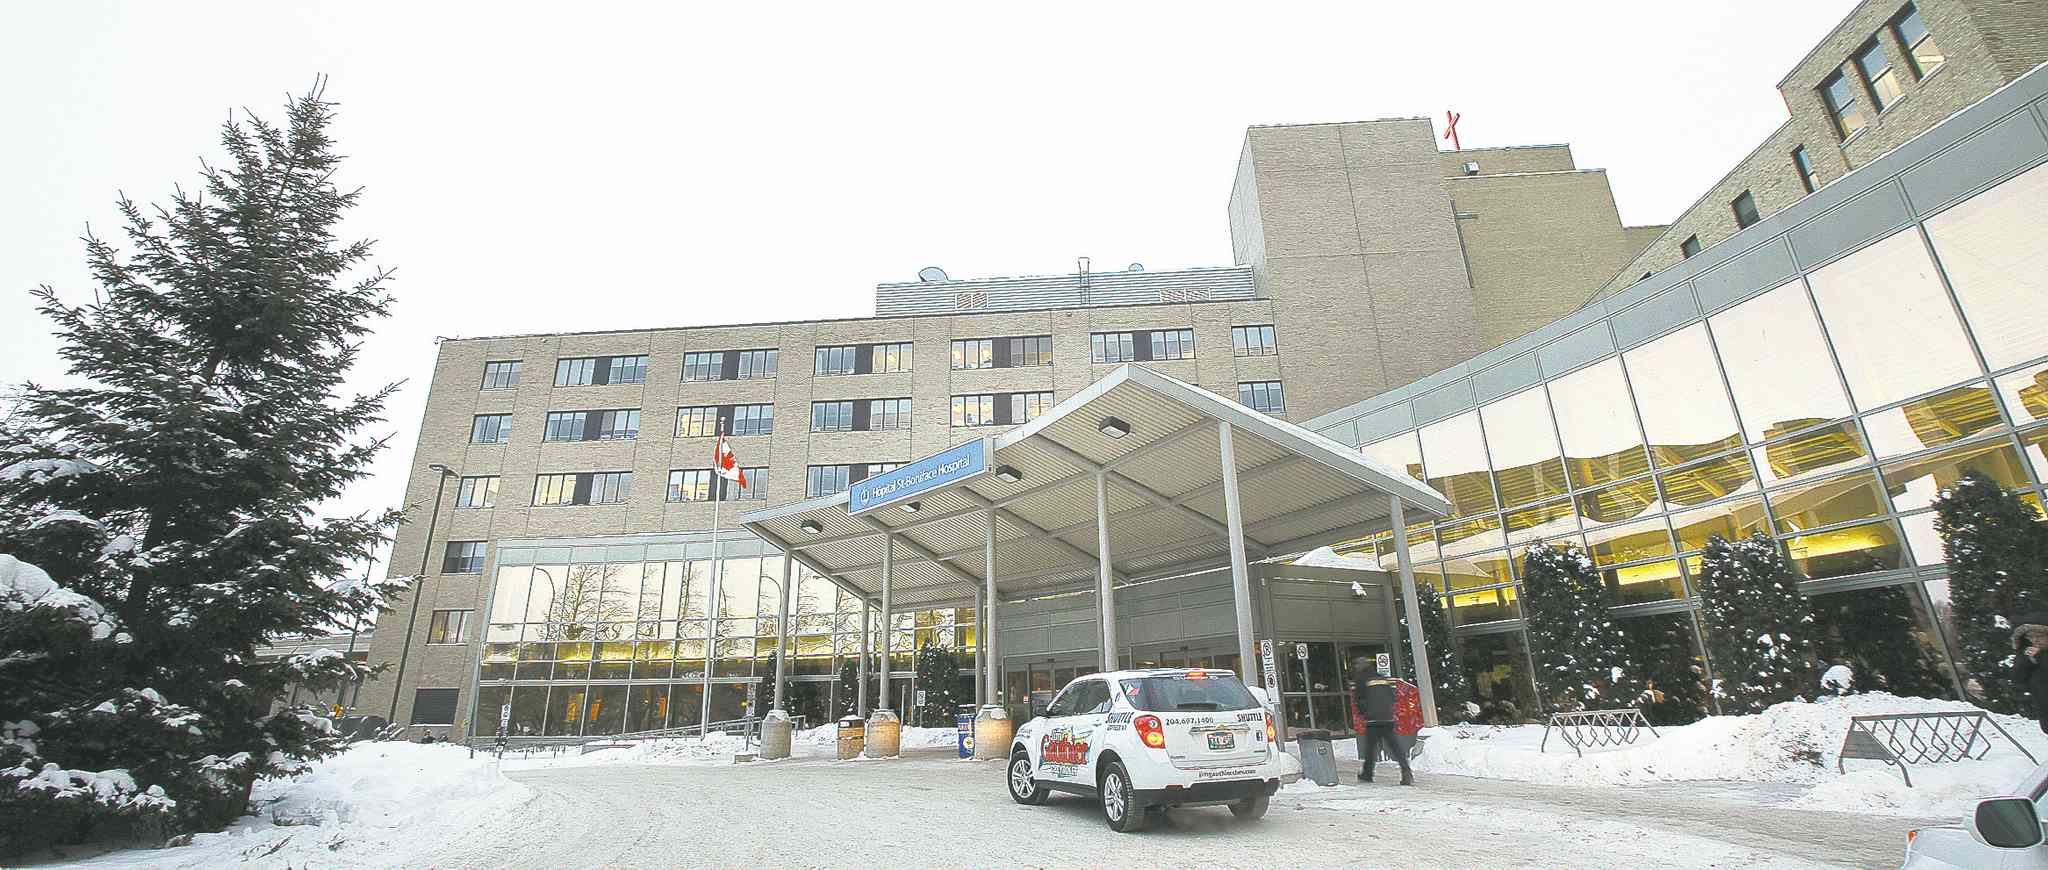 Phil Hossack / Winnipeg Free Press. 